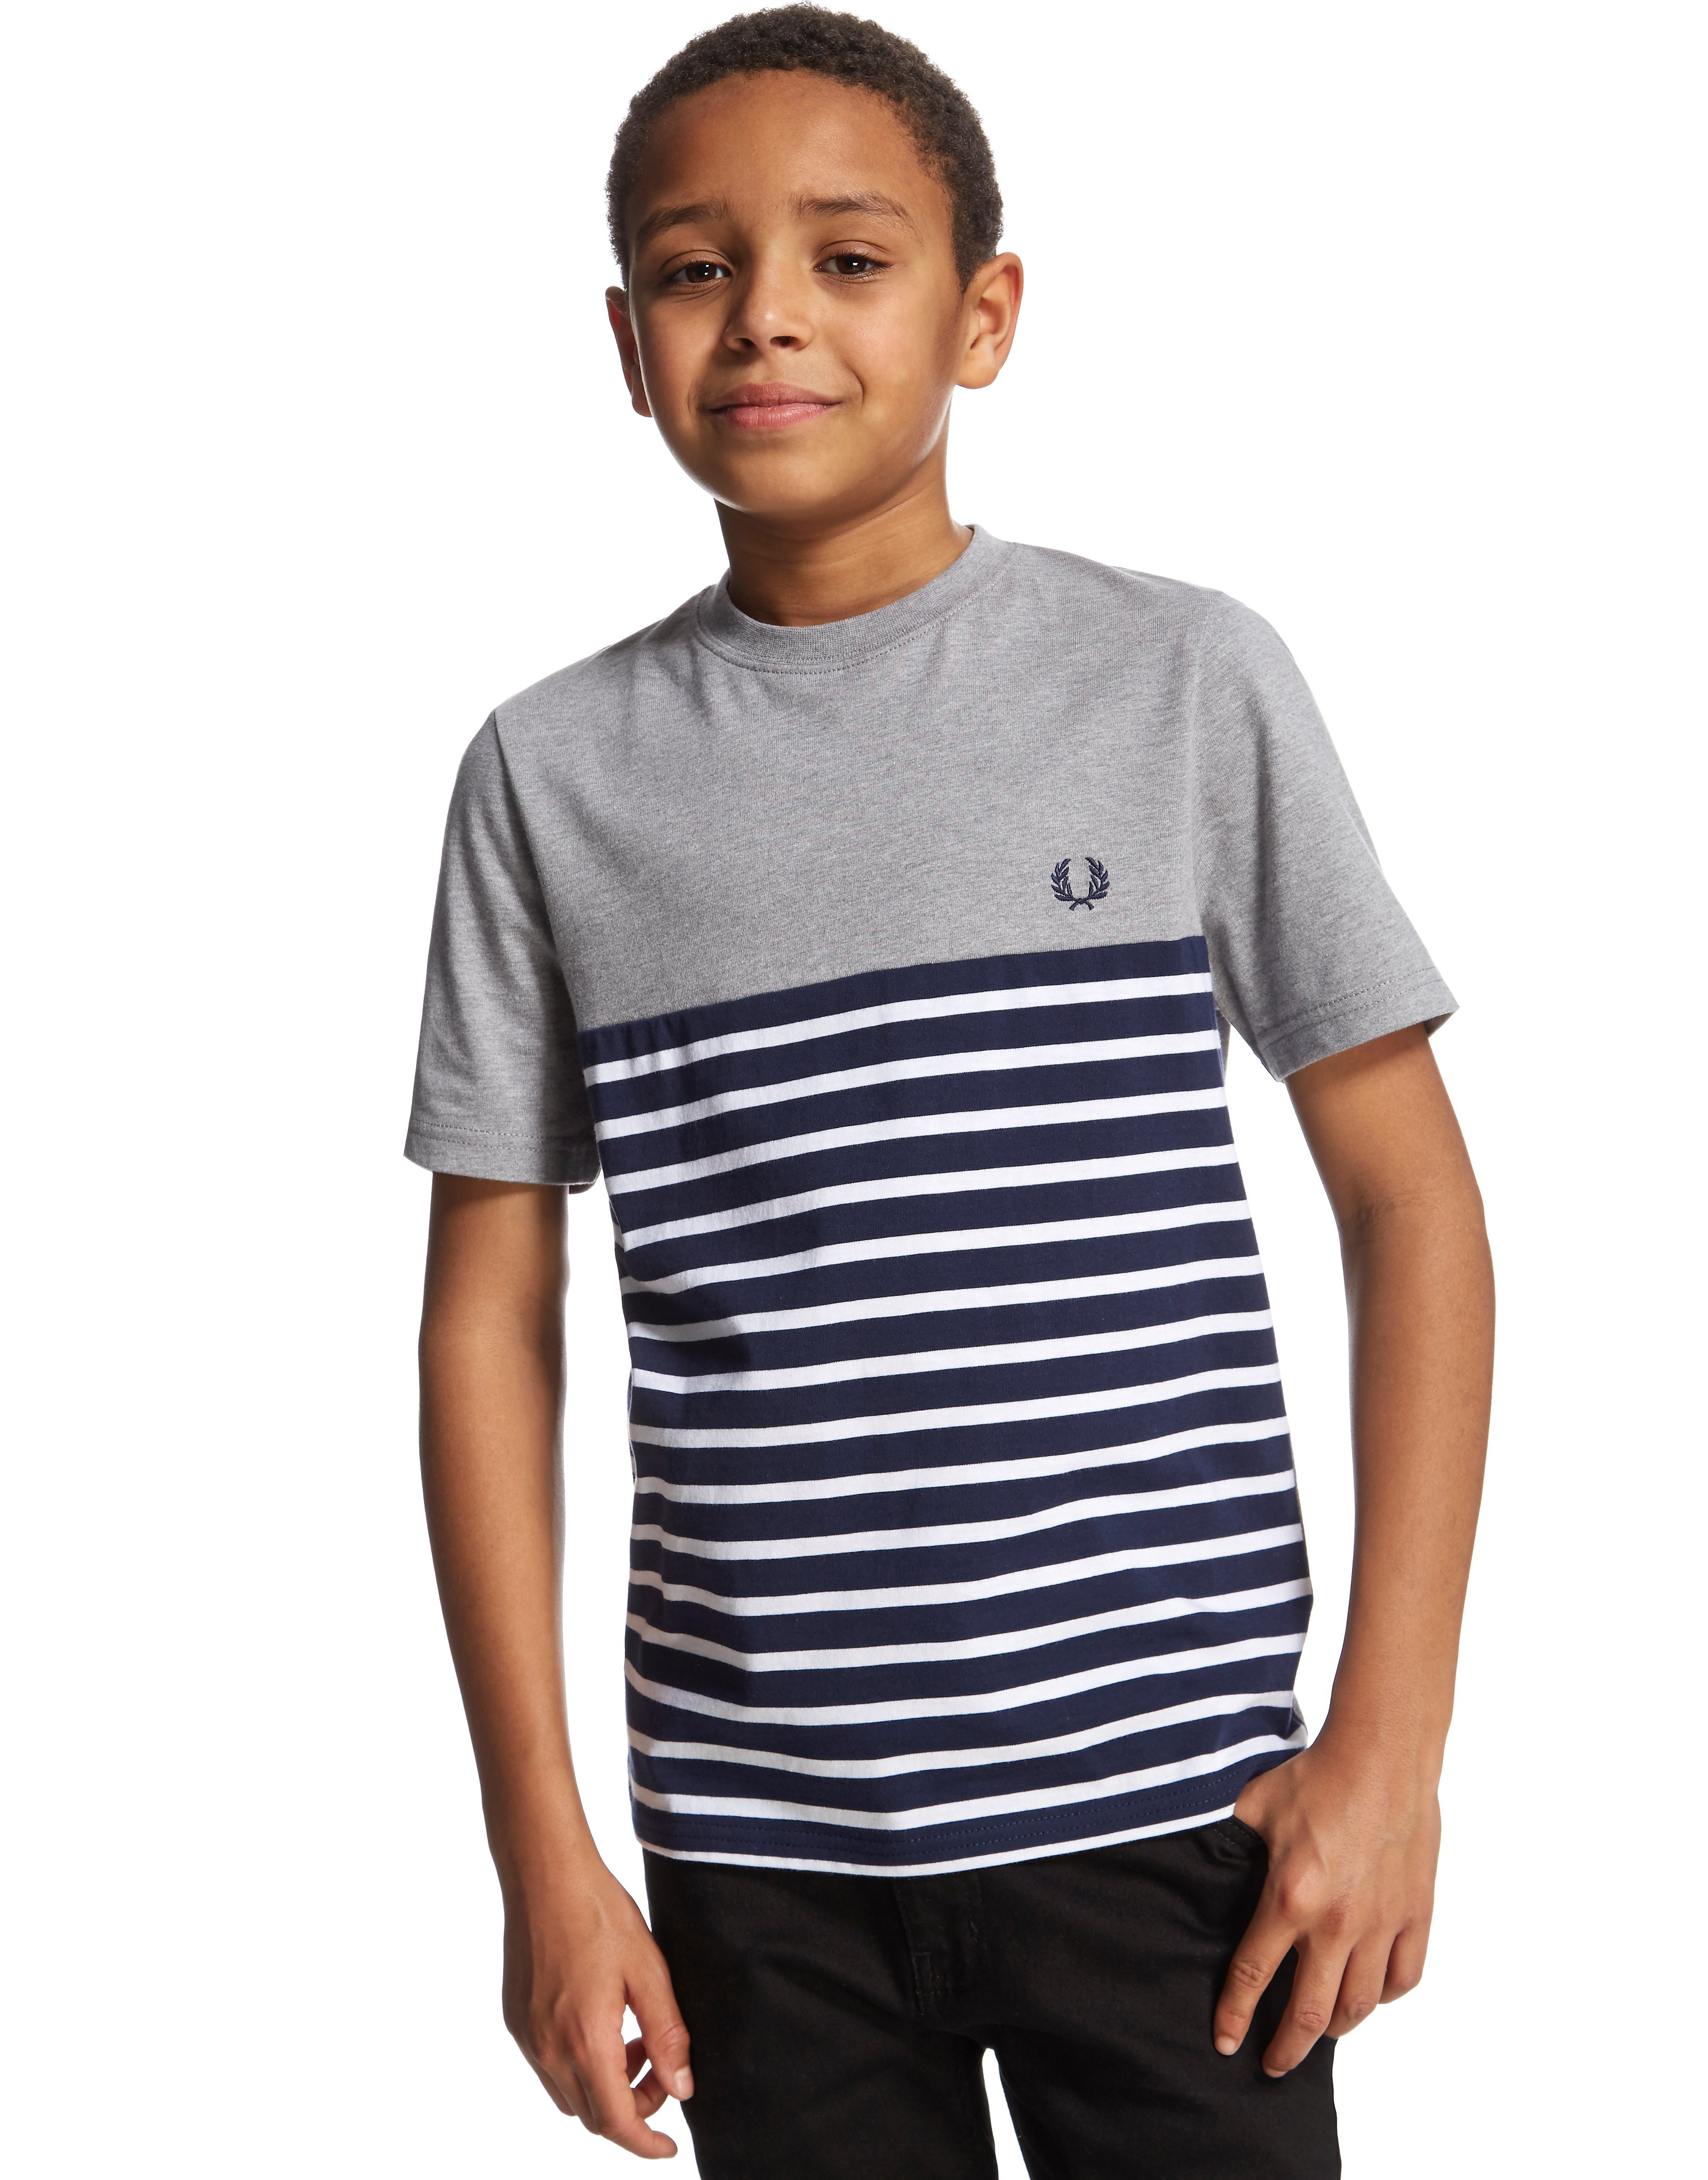 Fred Perry Cut & Sew Stripe T-Shirt Junior